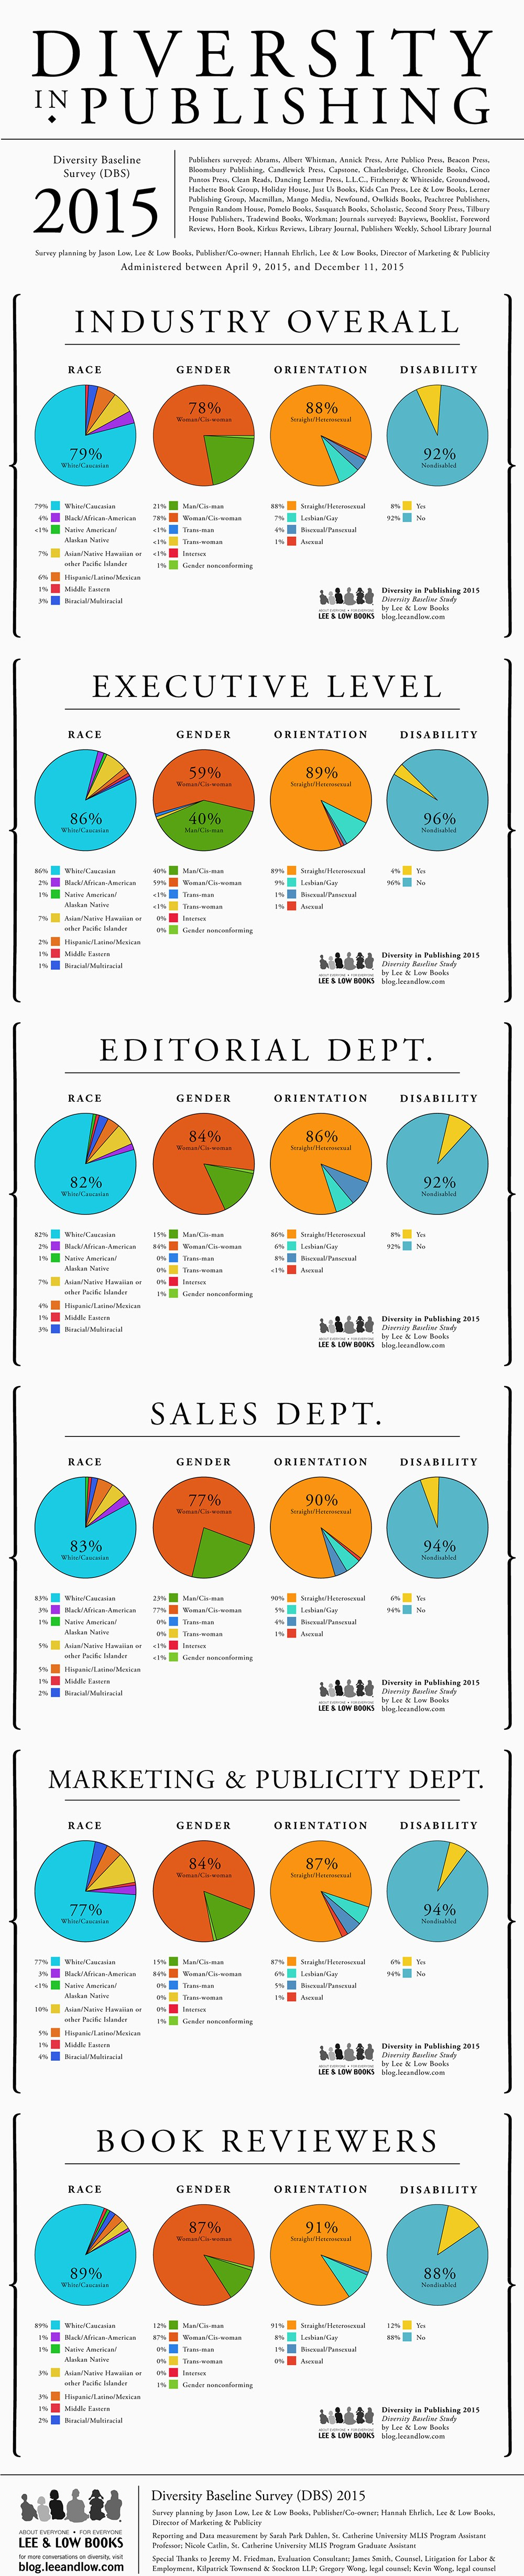 7 Stats About Diversity In Book Publishing That Reveal The